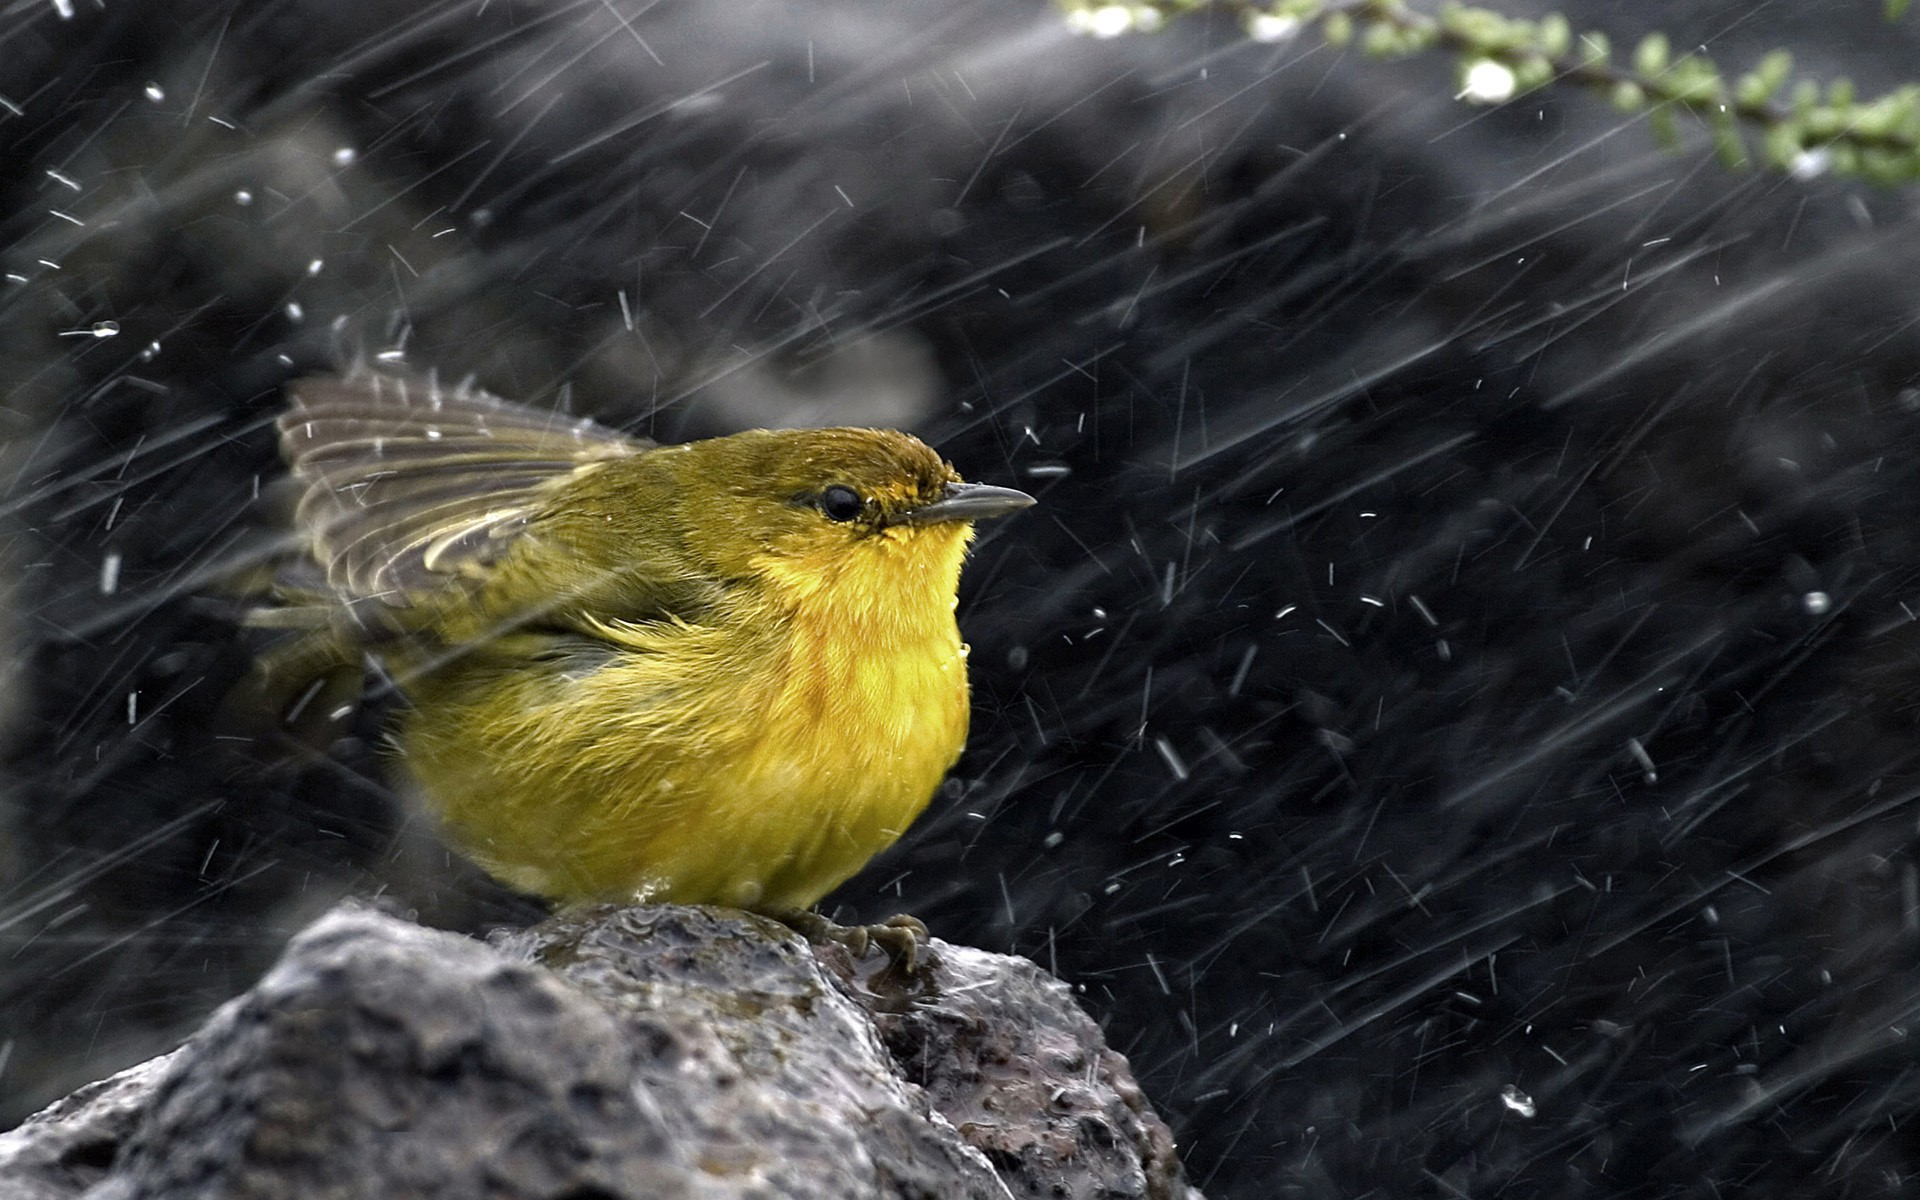 bird-in-rain-hd-wallpaper - hd wallpaper